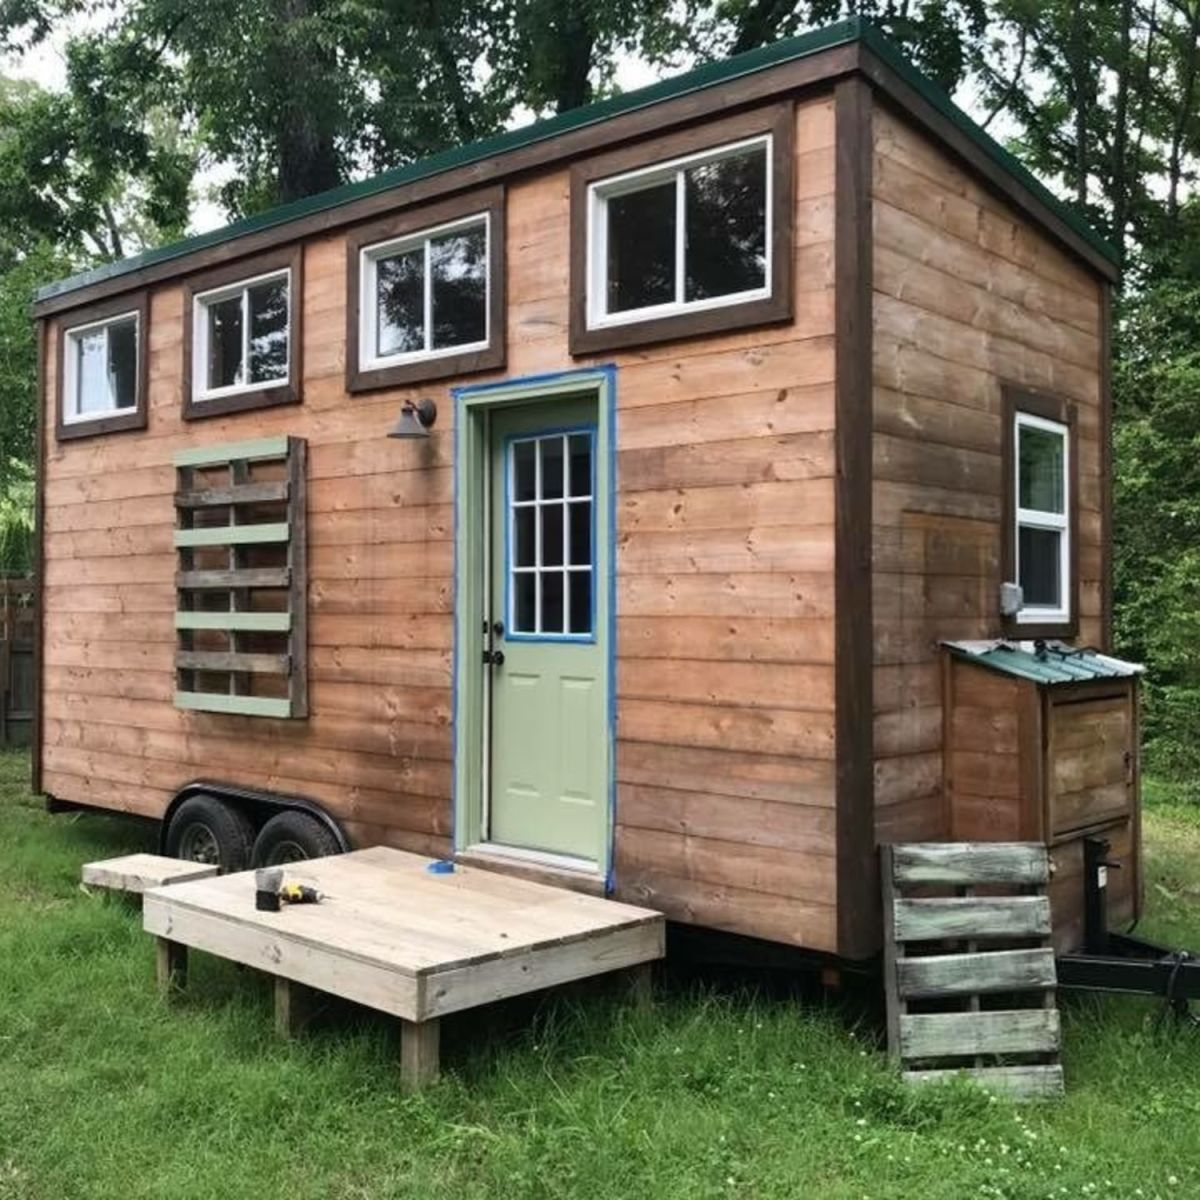 Rvia Certified Tiny On Wheels Tiny House For Sale In